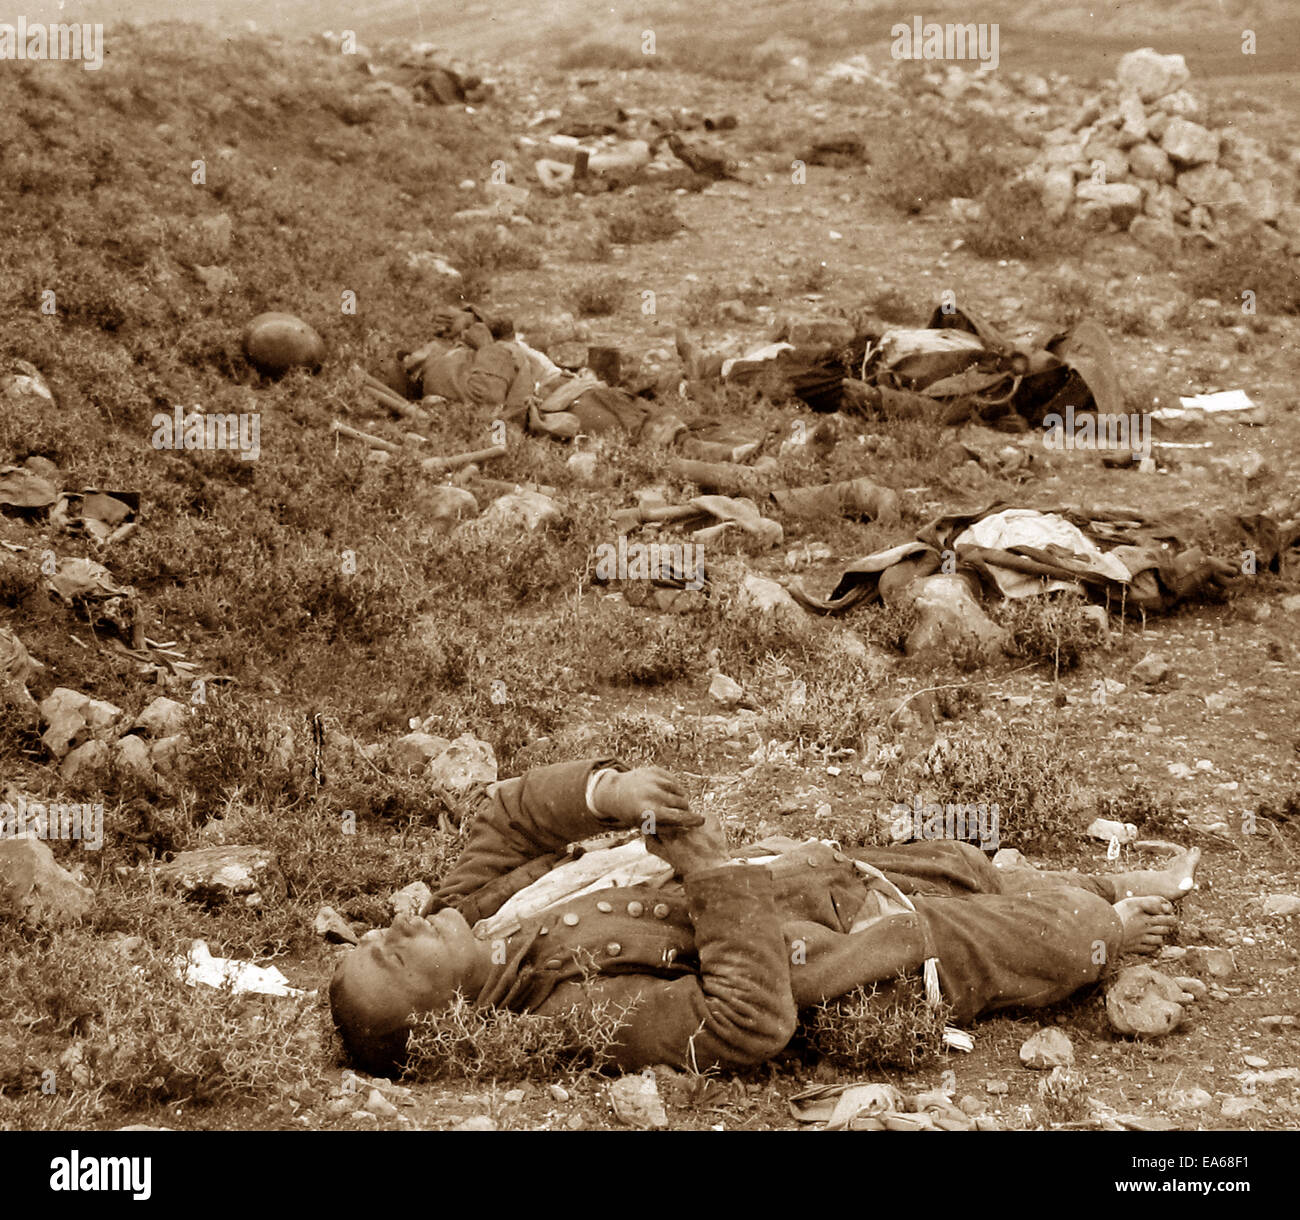 Turkish soldiers at Tell El-Ful 26th December 1917 - Stock Image